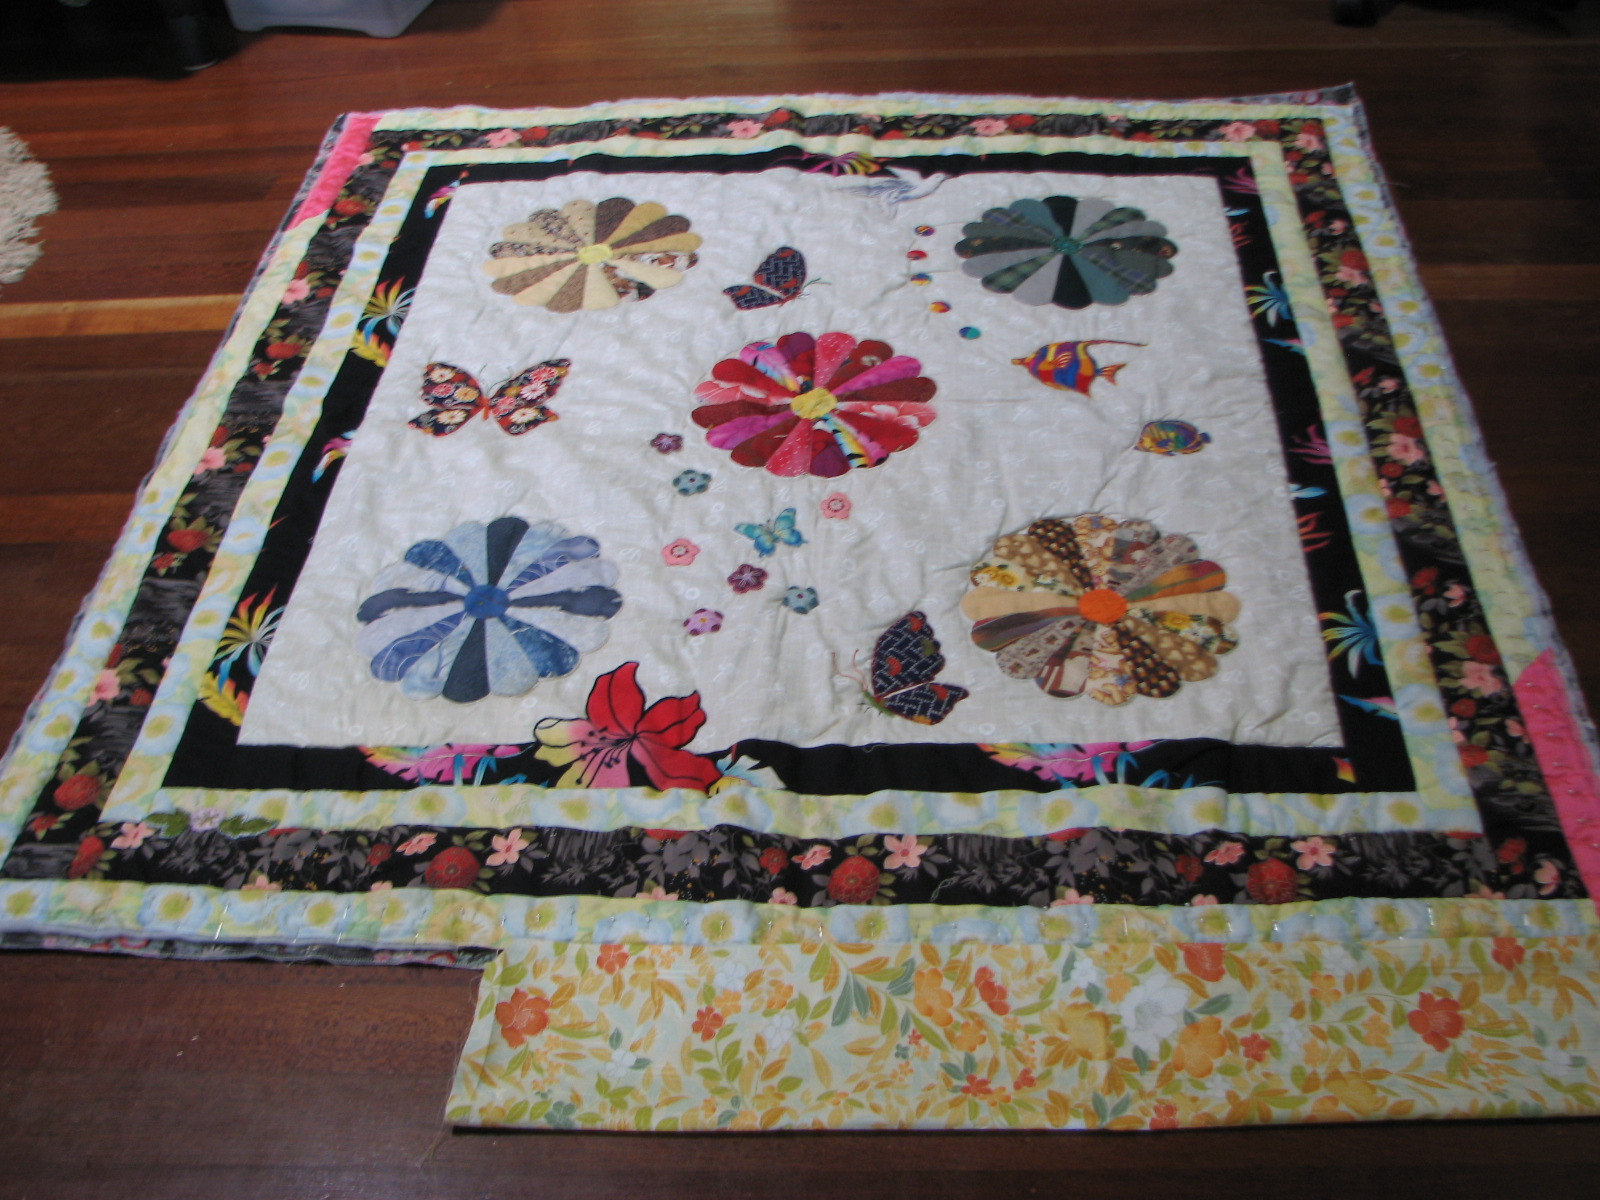 Making A Wall Hanging Quilt In To A Cuddly Quilt 14th